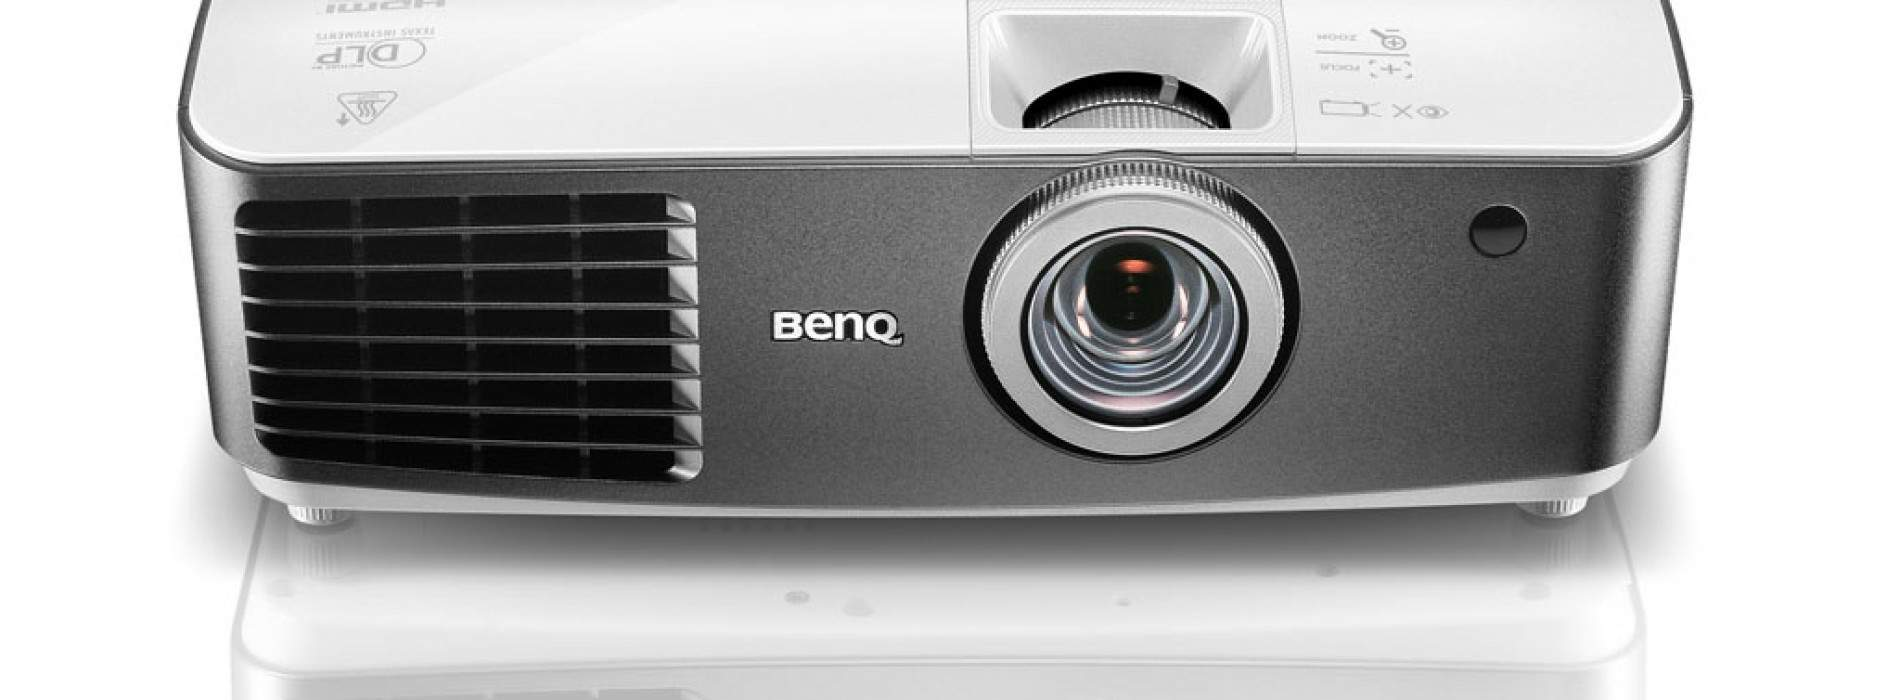 BenQ lanza sus proyectores W1300 y W1400, Full HD y 3D